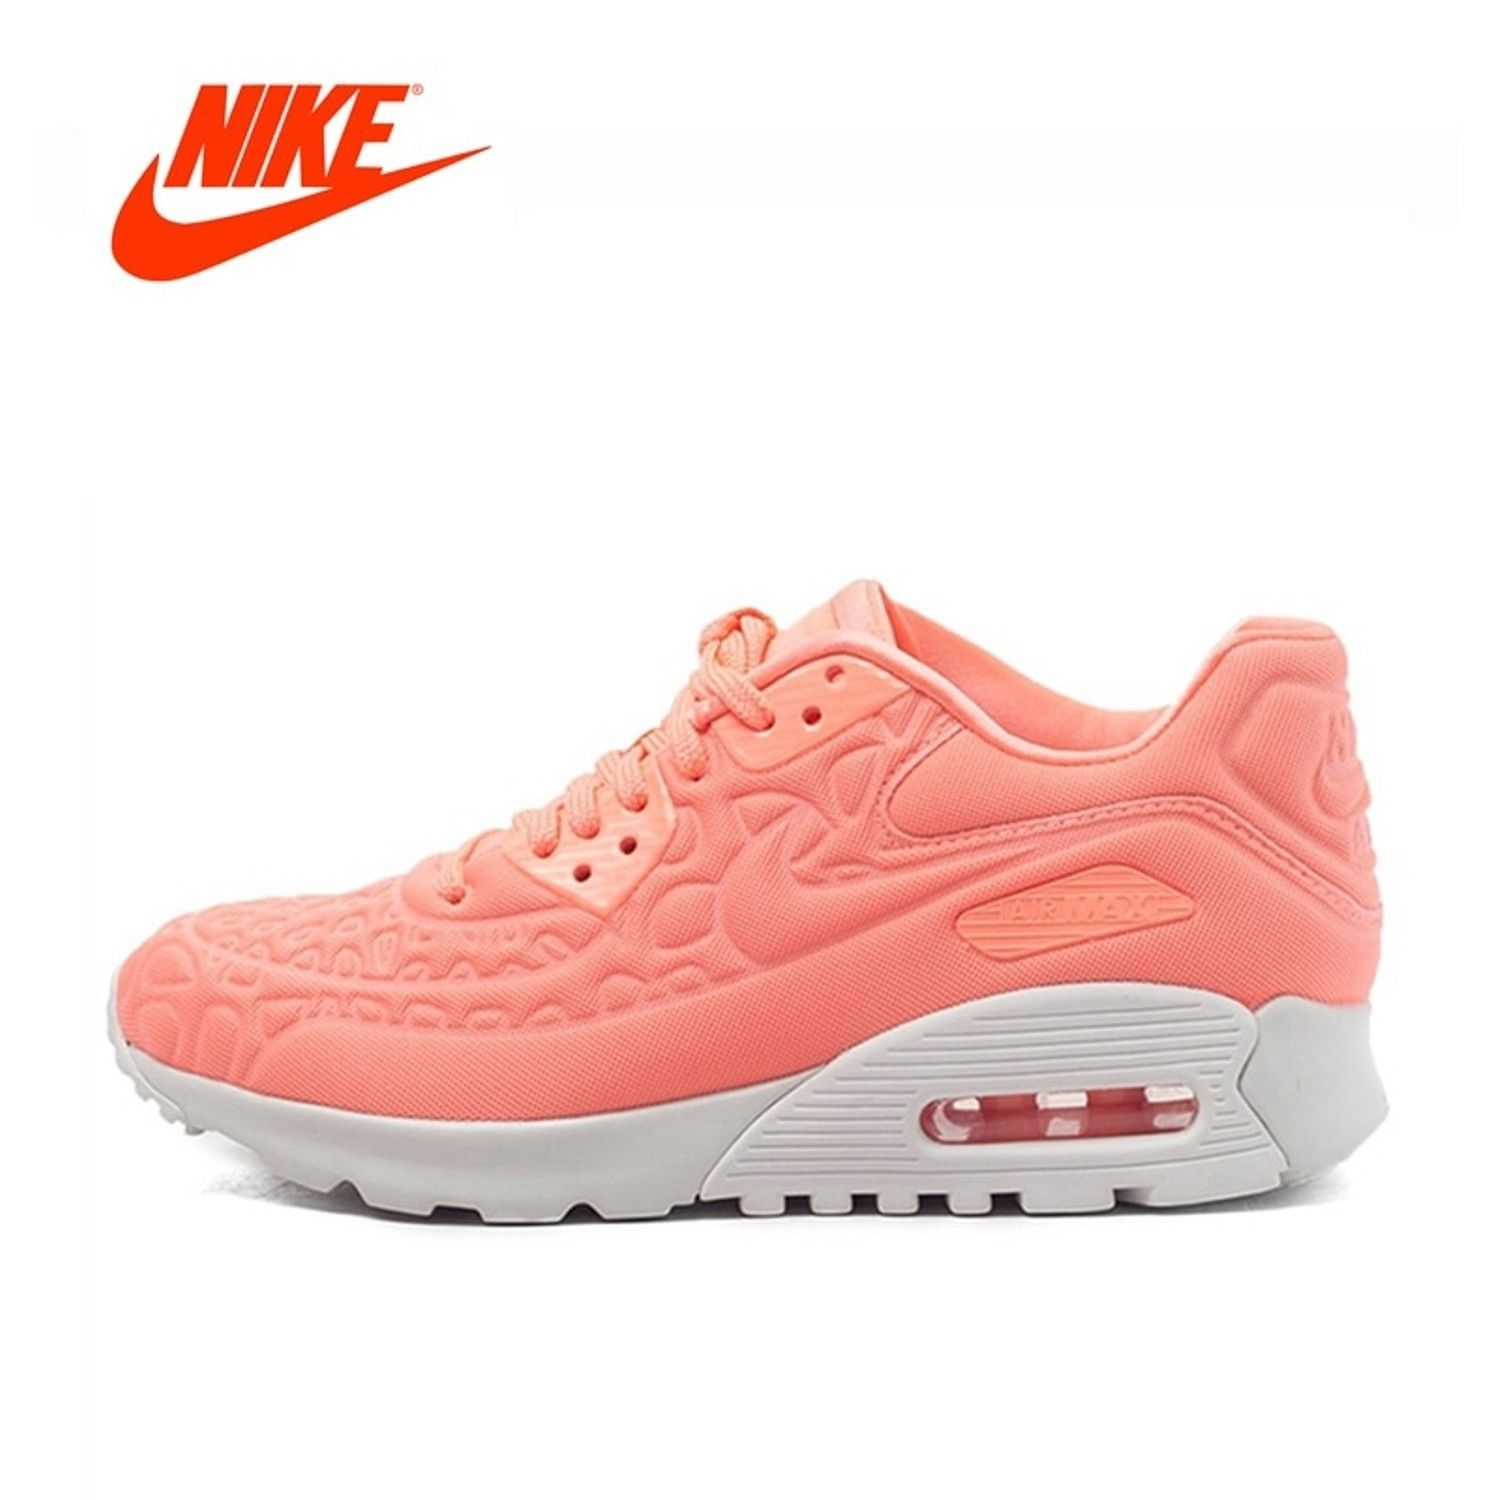 big sale f4285 e2bc5 S l1600. S l1600. Previous. NIKE AIR MAX 90 LX 898512-600 Original  Authentic Women s Running Sports Shoes